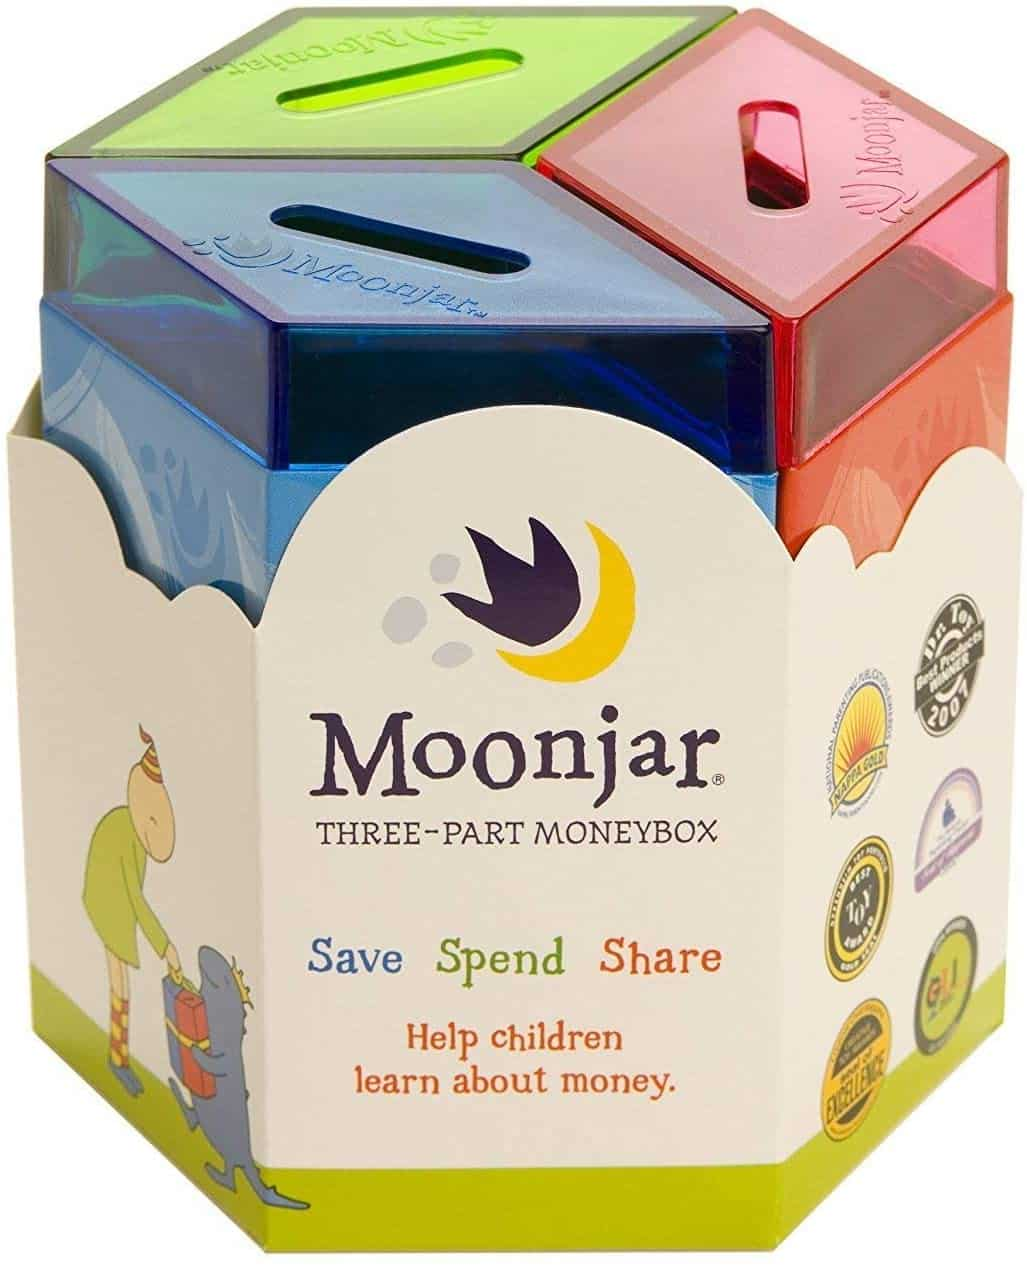 Moonjar Spend Classic 3-Part Moneybox Bank